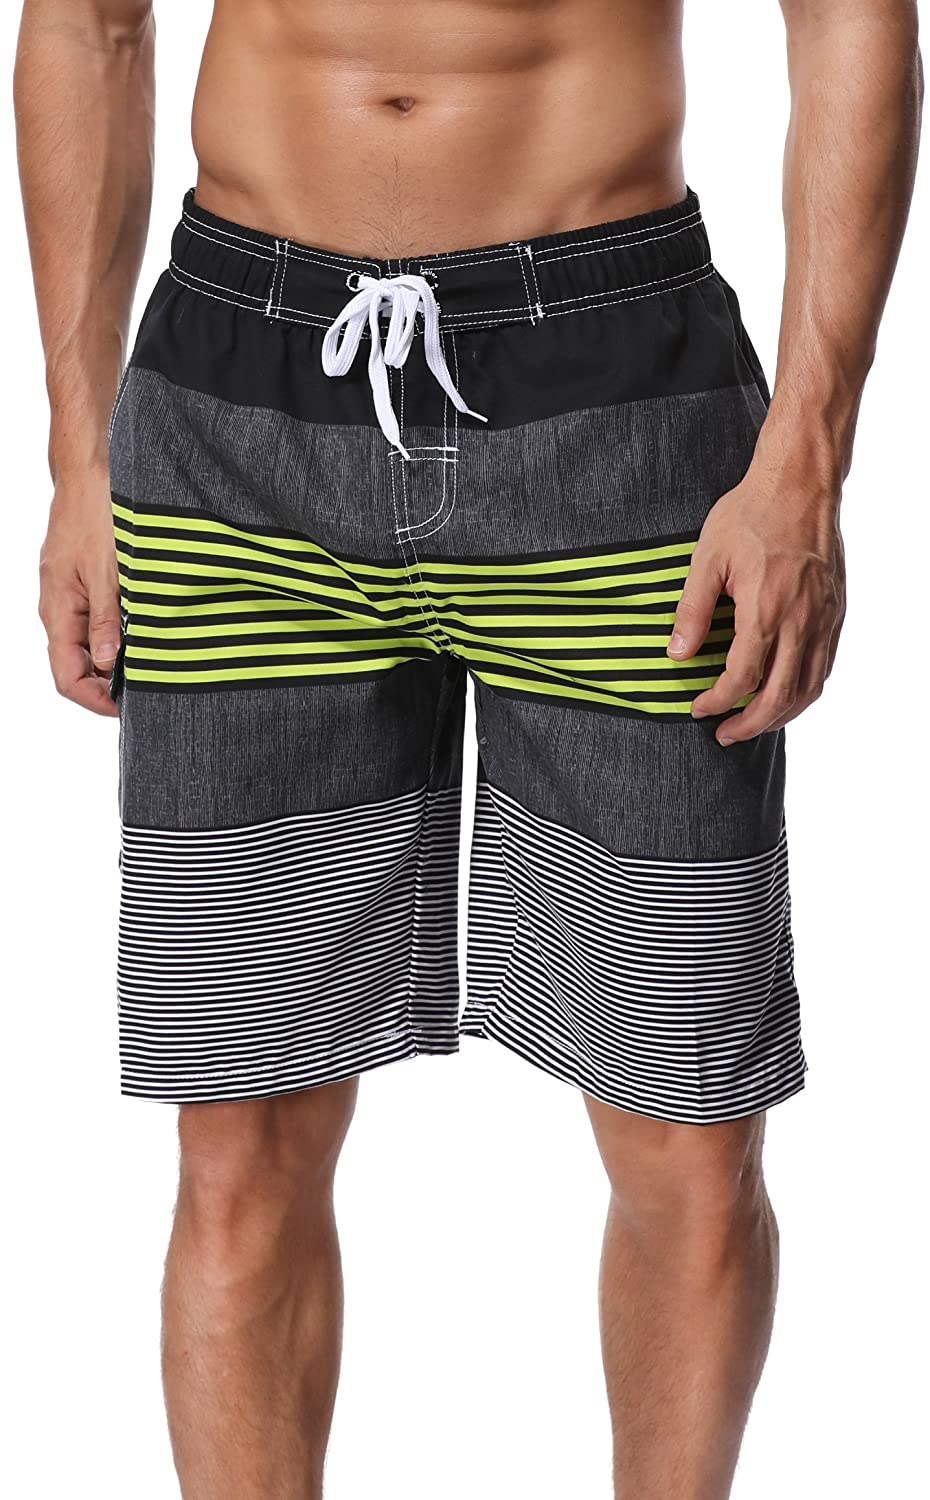 f4629987e1 LIGHTWEIGHT & DURABLE - Men's swim trunks are made from strong and brushed  polyester, mens swimming trunks ...